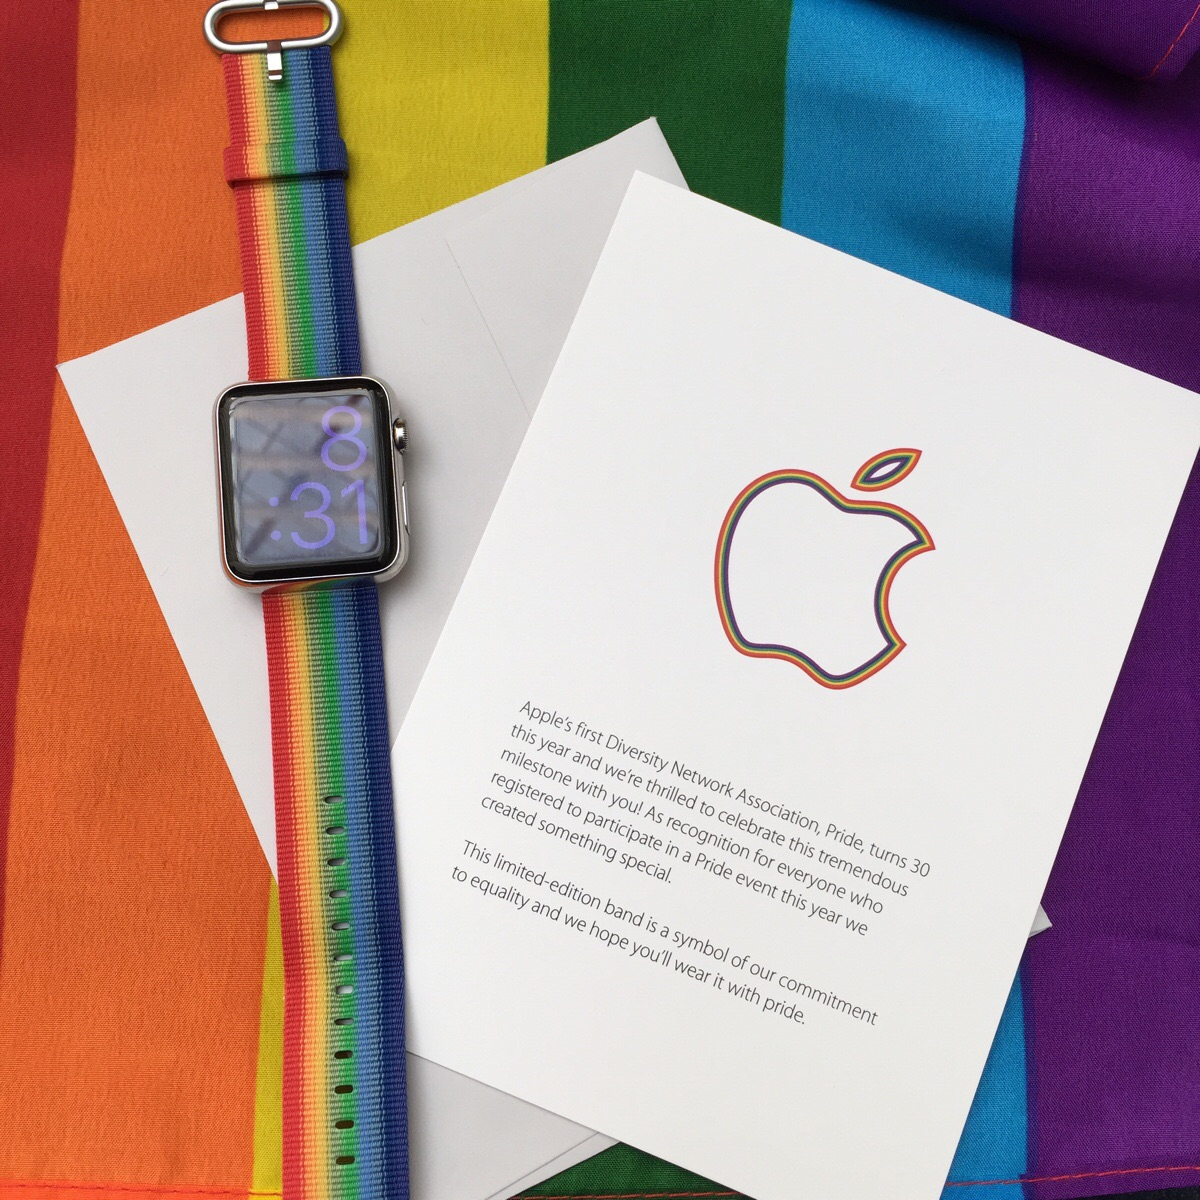 Apple Watch gay parade